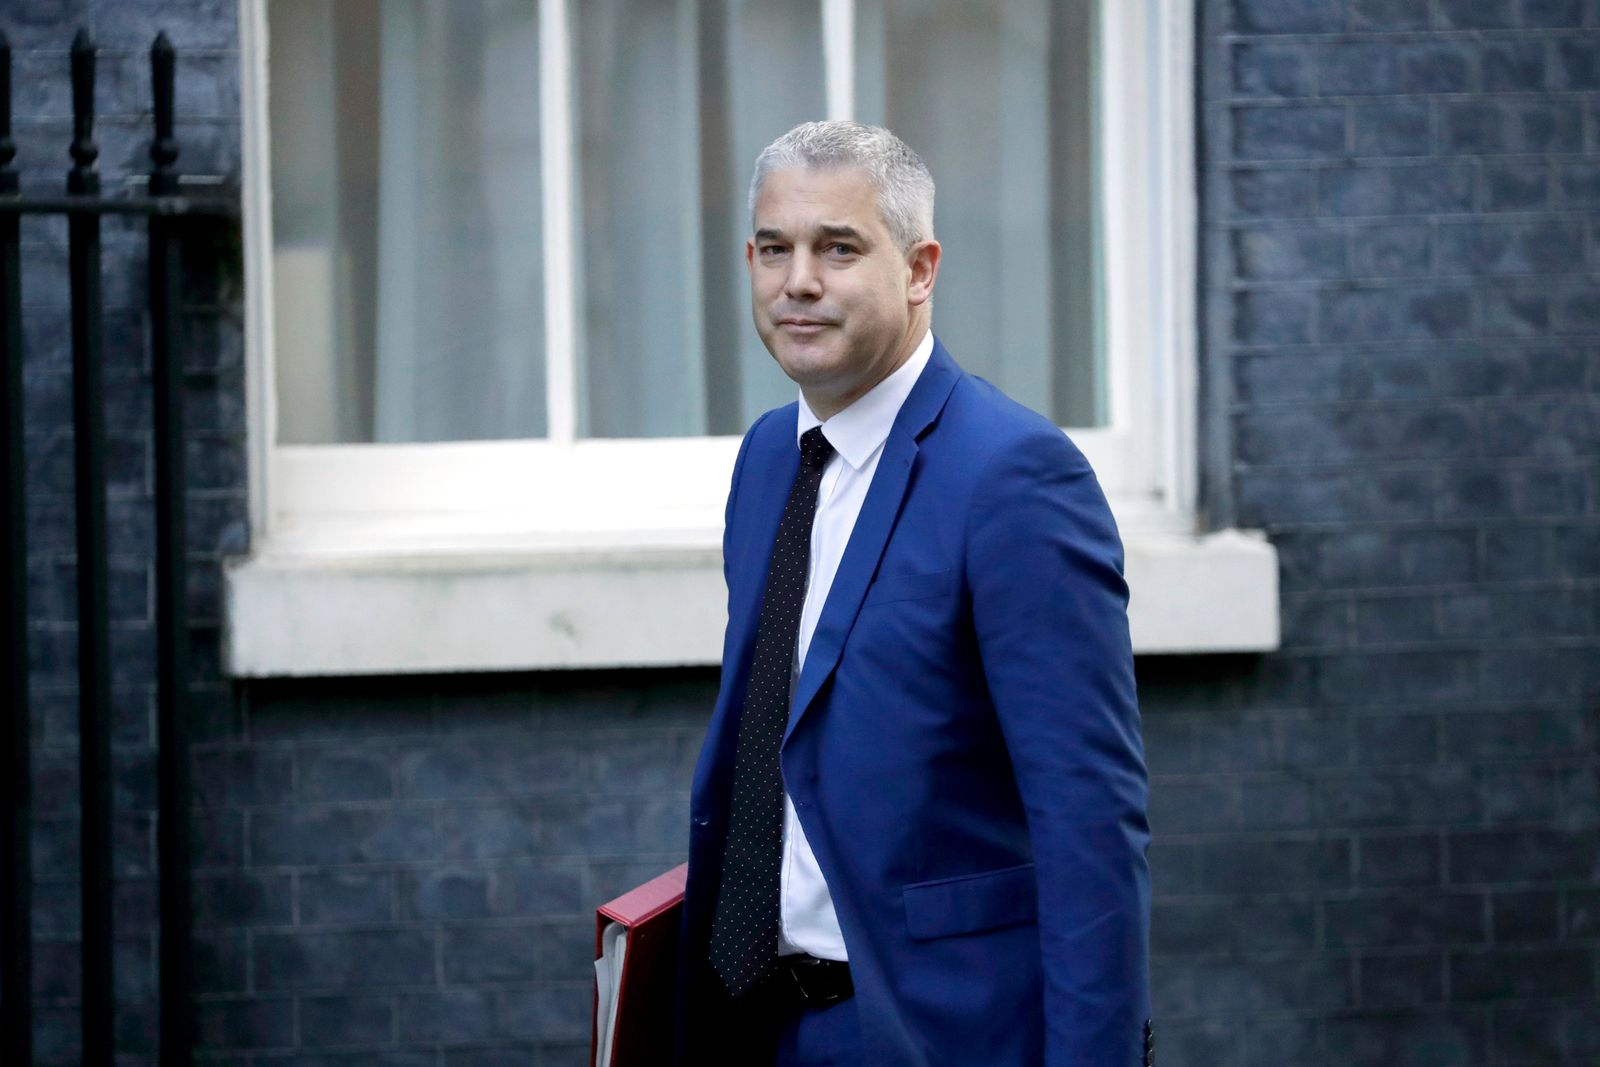 Britain's Secretary of State for Exiting the European Union Steve Barclay arrives for a cabinet meeting at 10 Downing Street in London, Tuesday, Oct. 22, 2019.{ } (AP Photo/Matt Dunham)